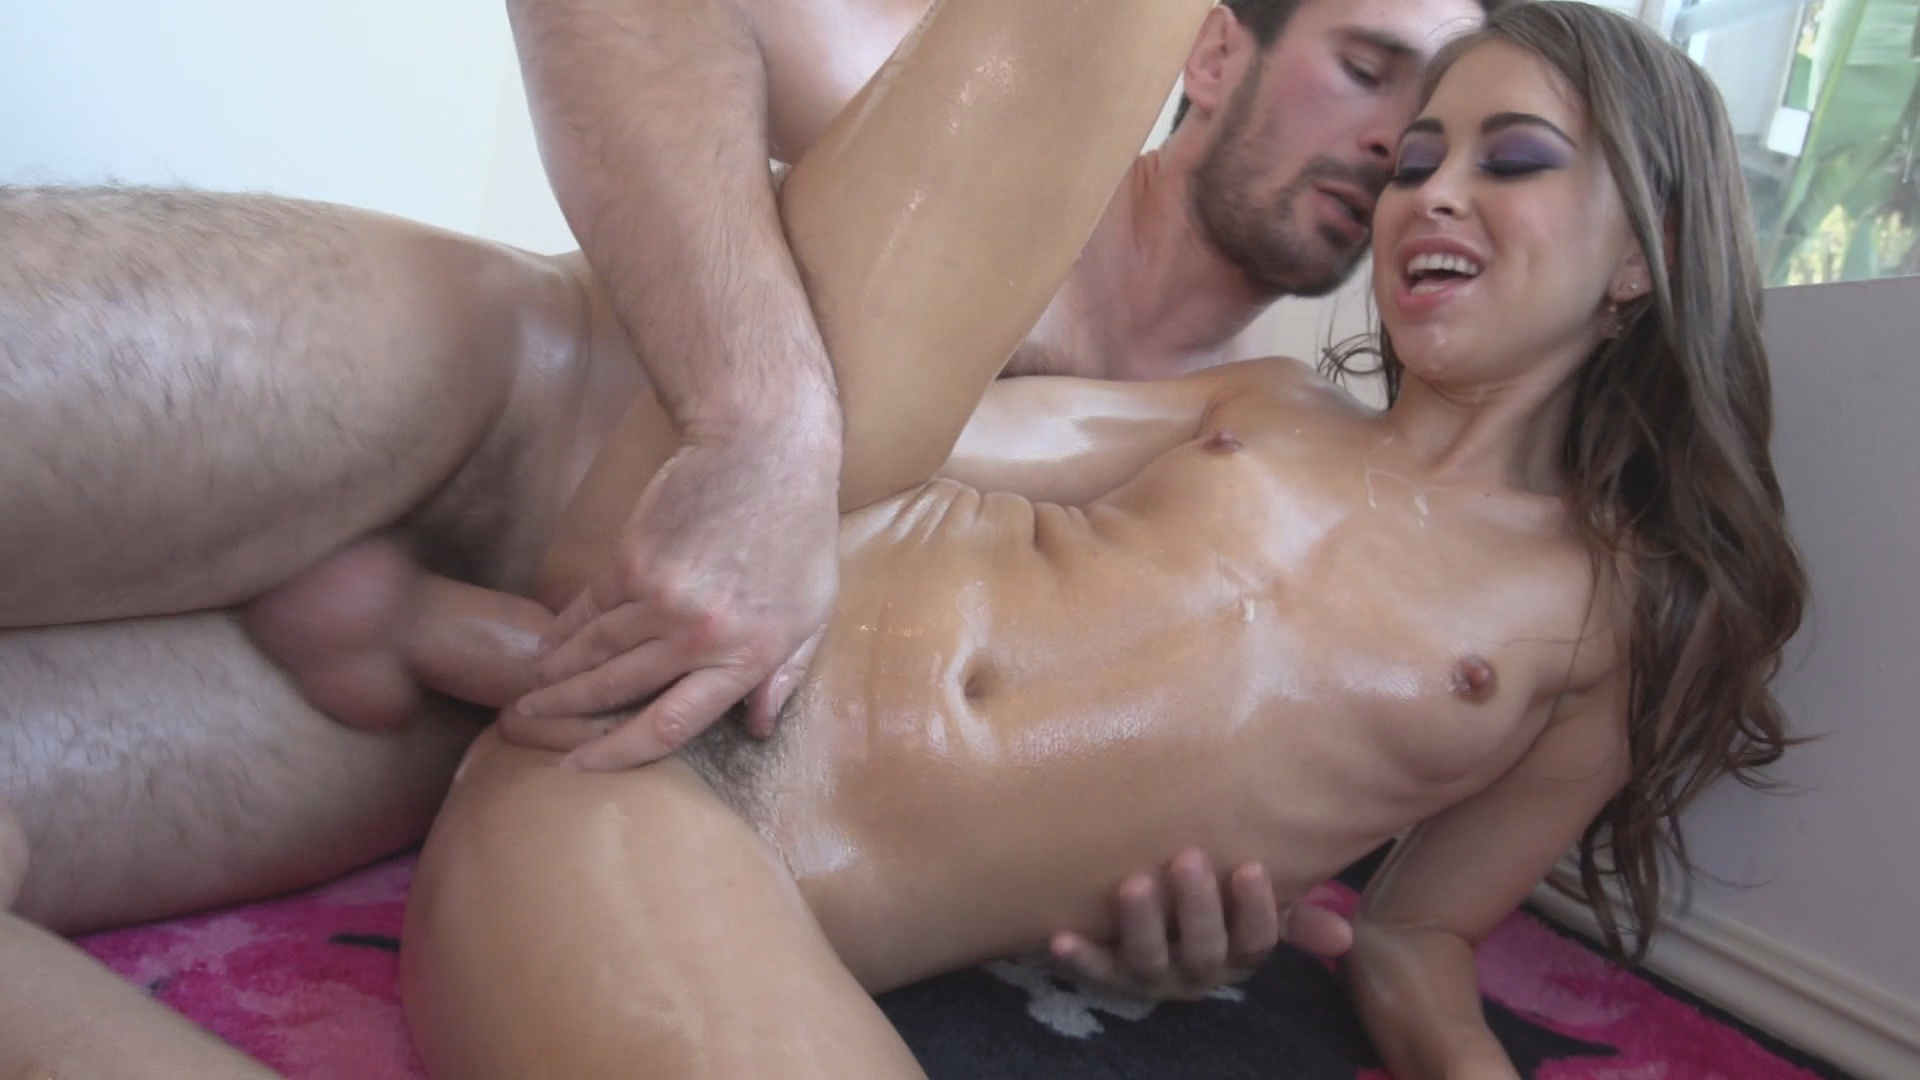 Oil Overload 10 / Manuel covers Riley Reid in more than just oil.